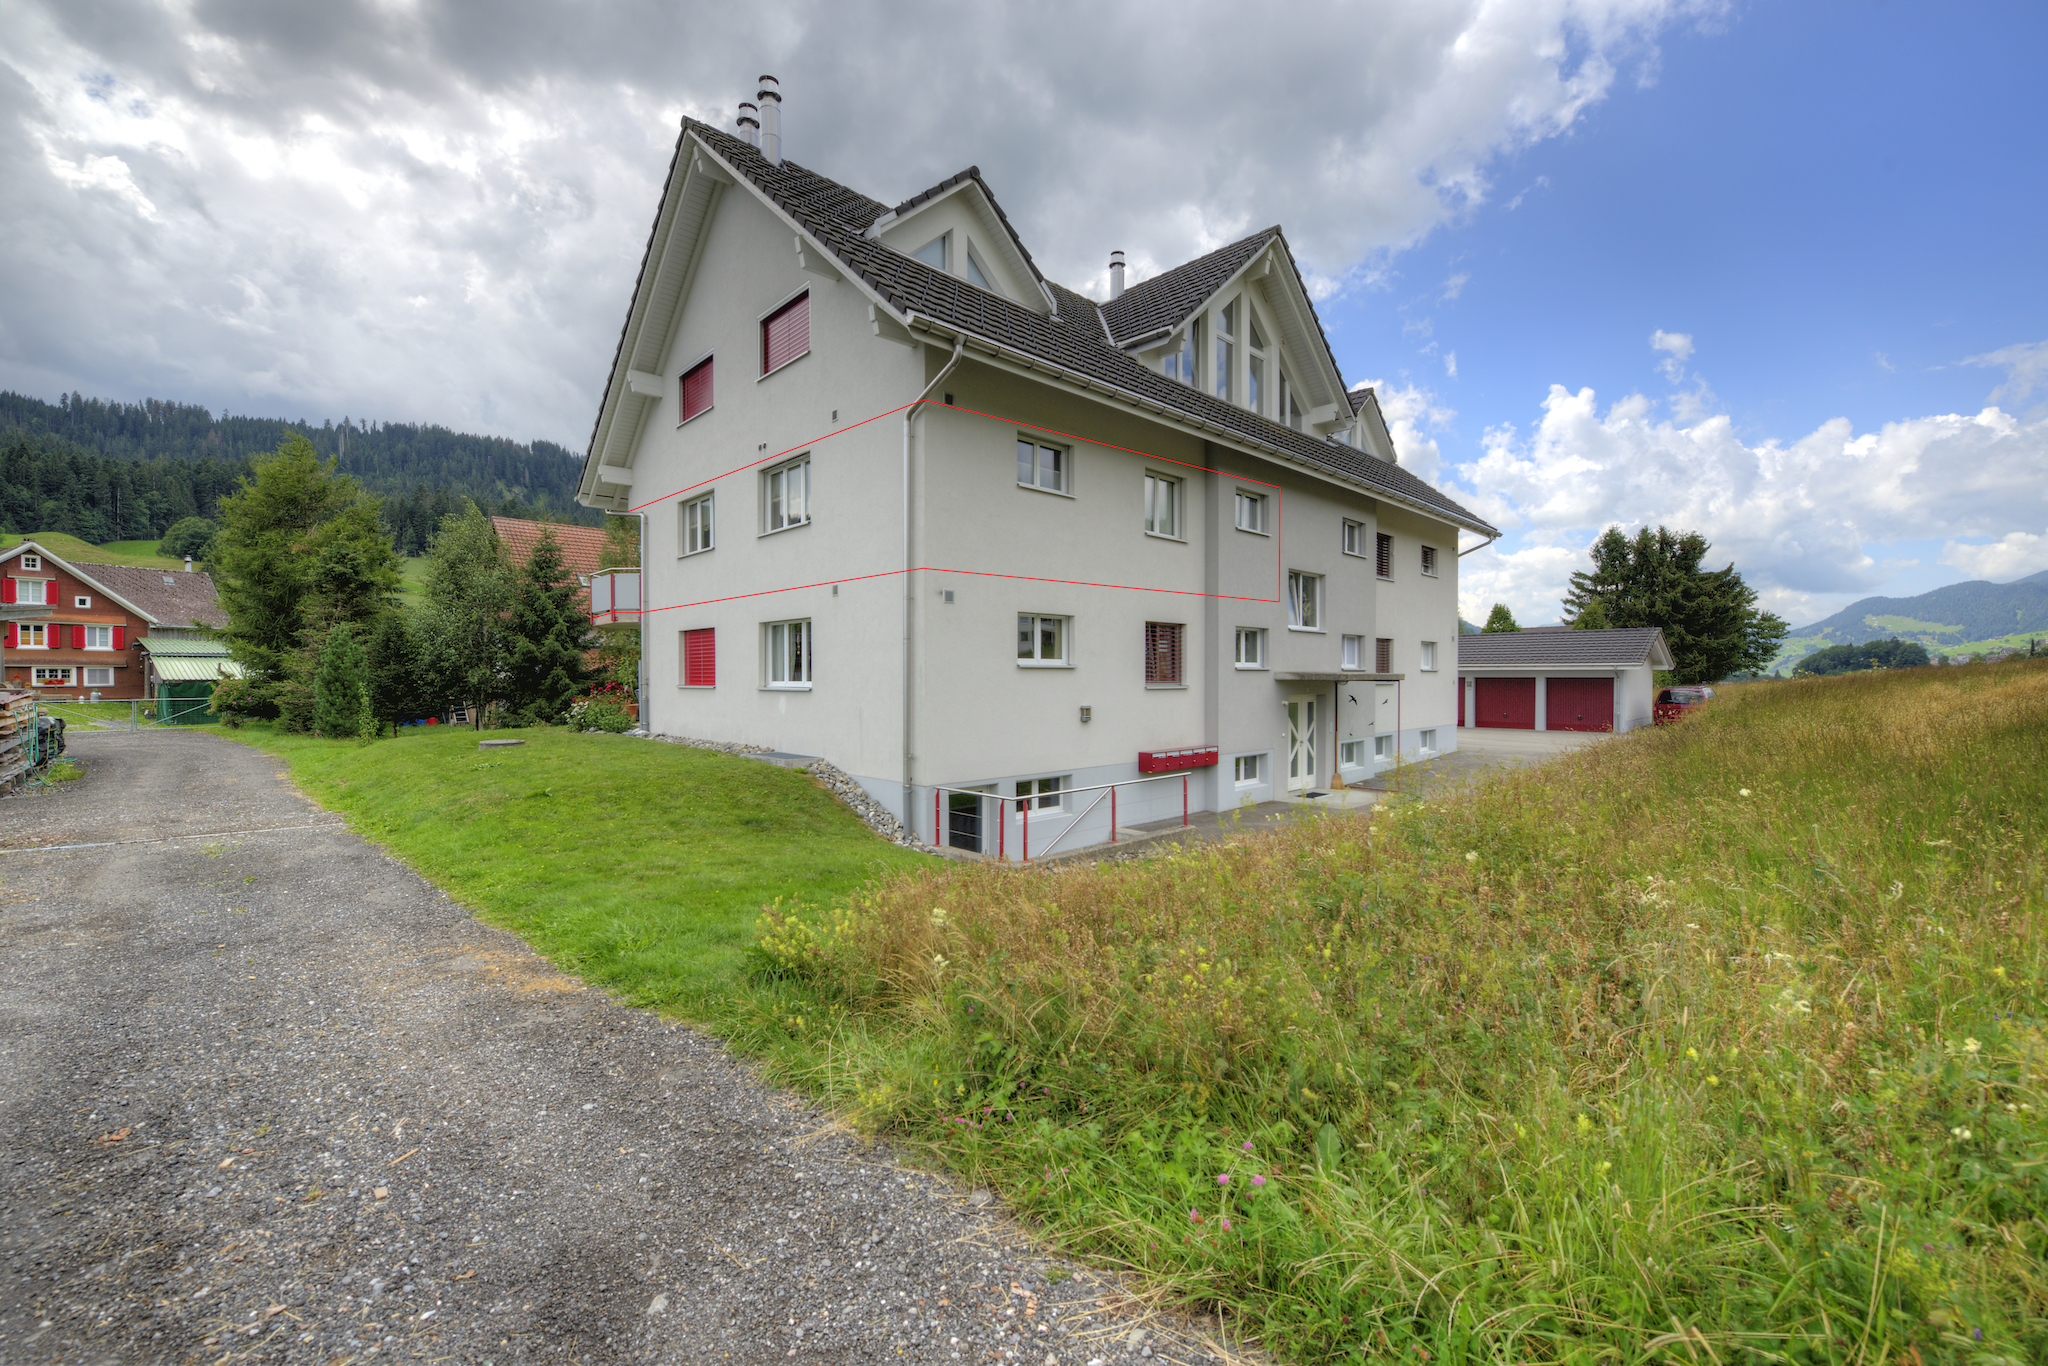 Mehrfamilienhaus an ruhiger Lage